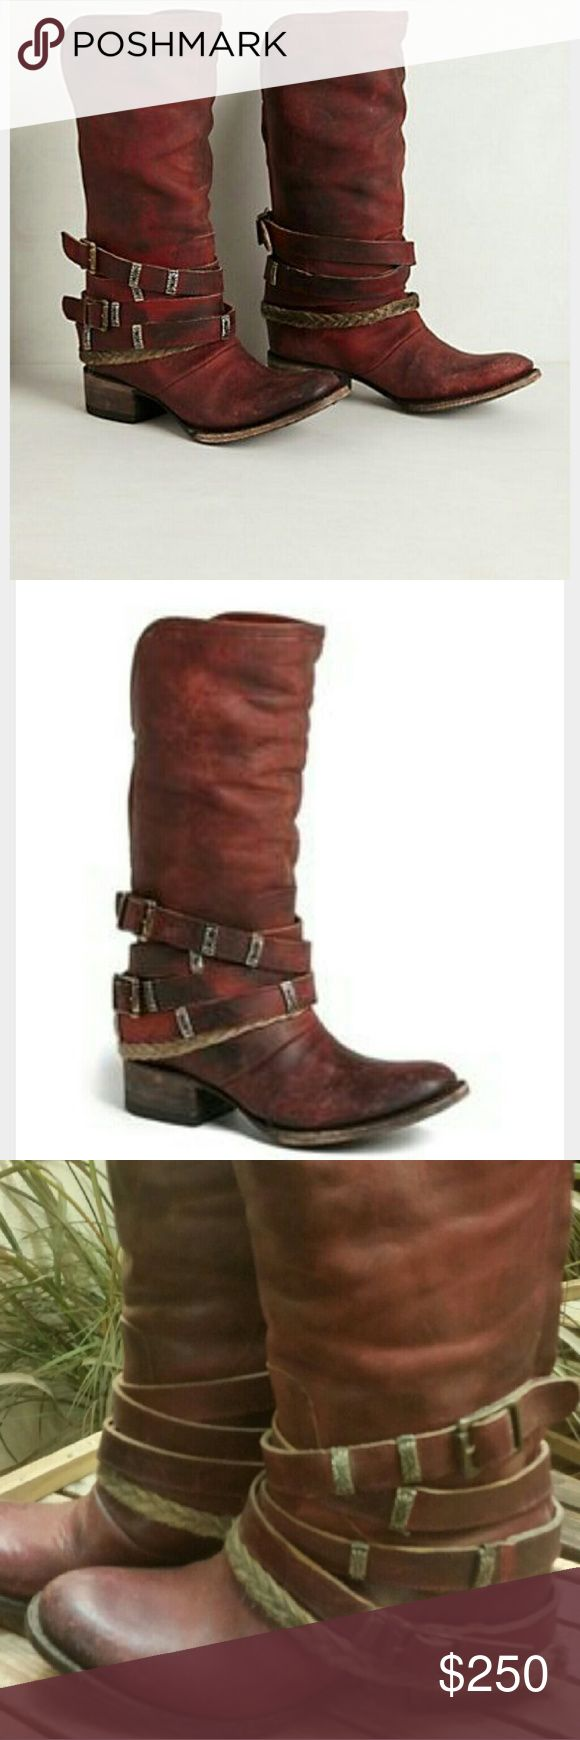 Amazing red Freebird dover boots Stunning worn once!  Not to much to say about these so I'll let the pixs speak for themselves!  Let me know if you have any questions! Freebird Shoes Over the Knee Boots